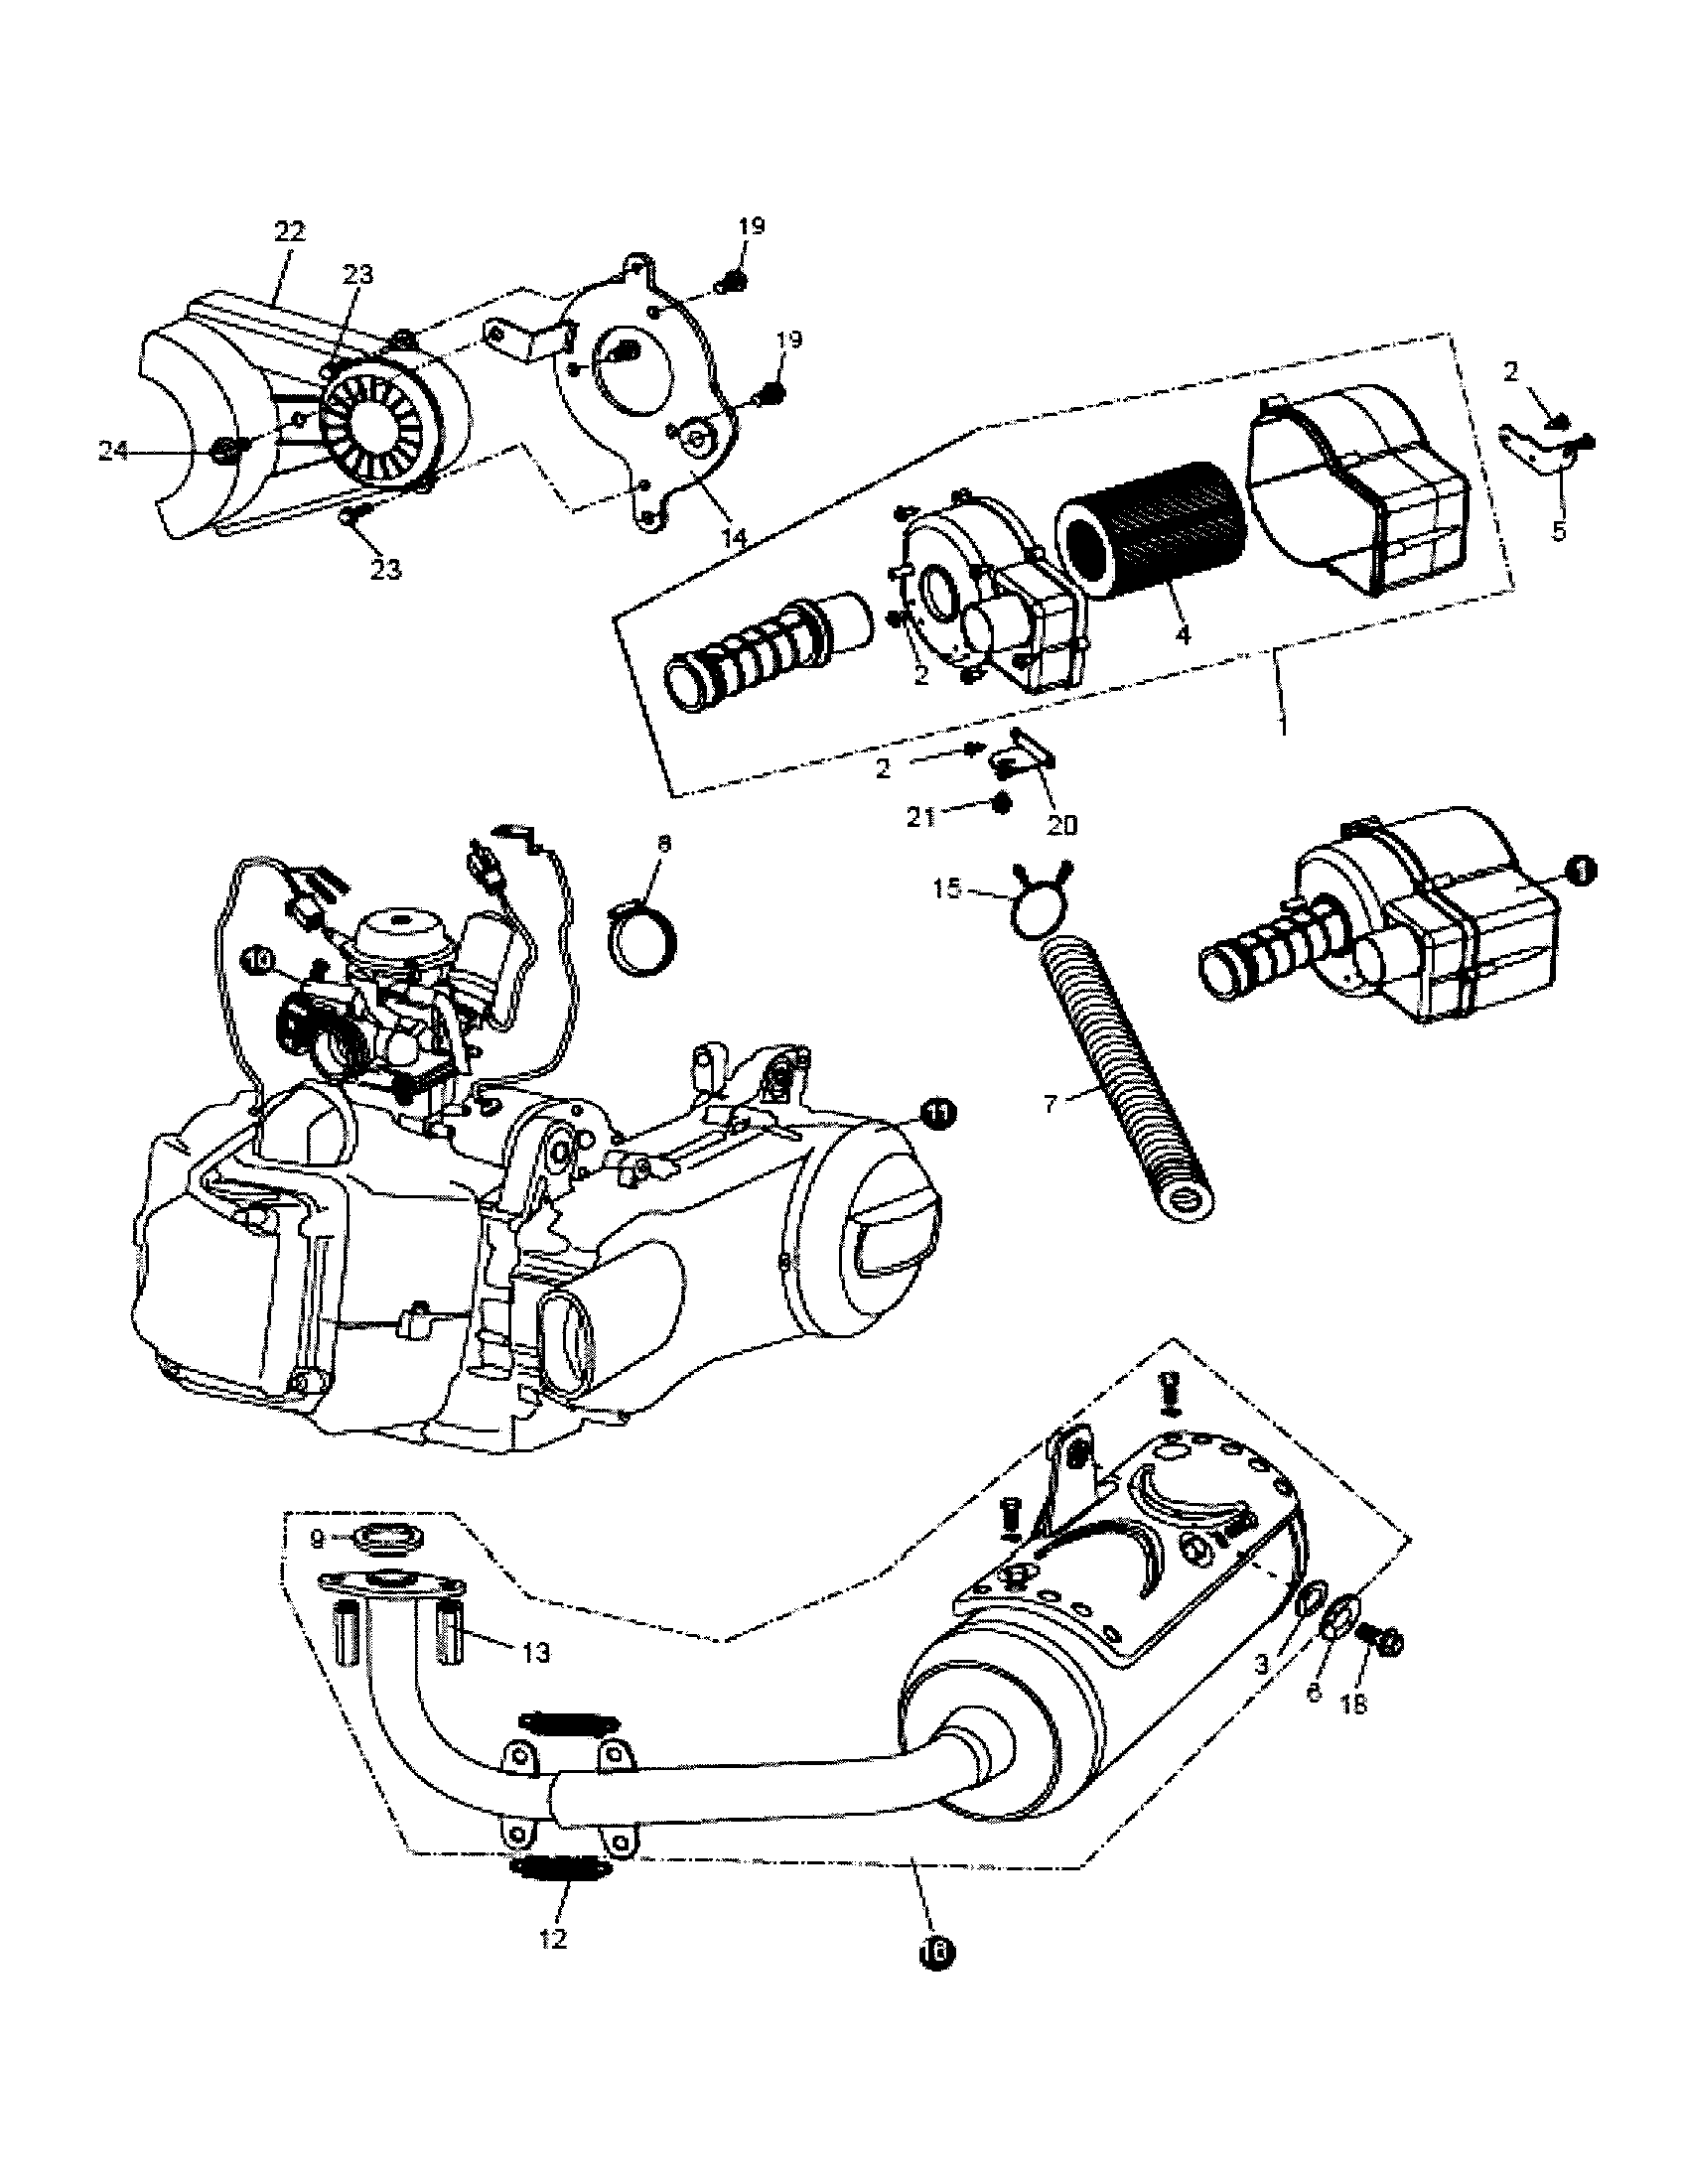 hight resolution of dune buggy engine schematics drawings wiring library dune buggy engine schematics